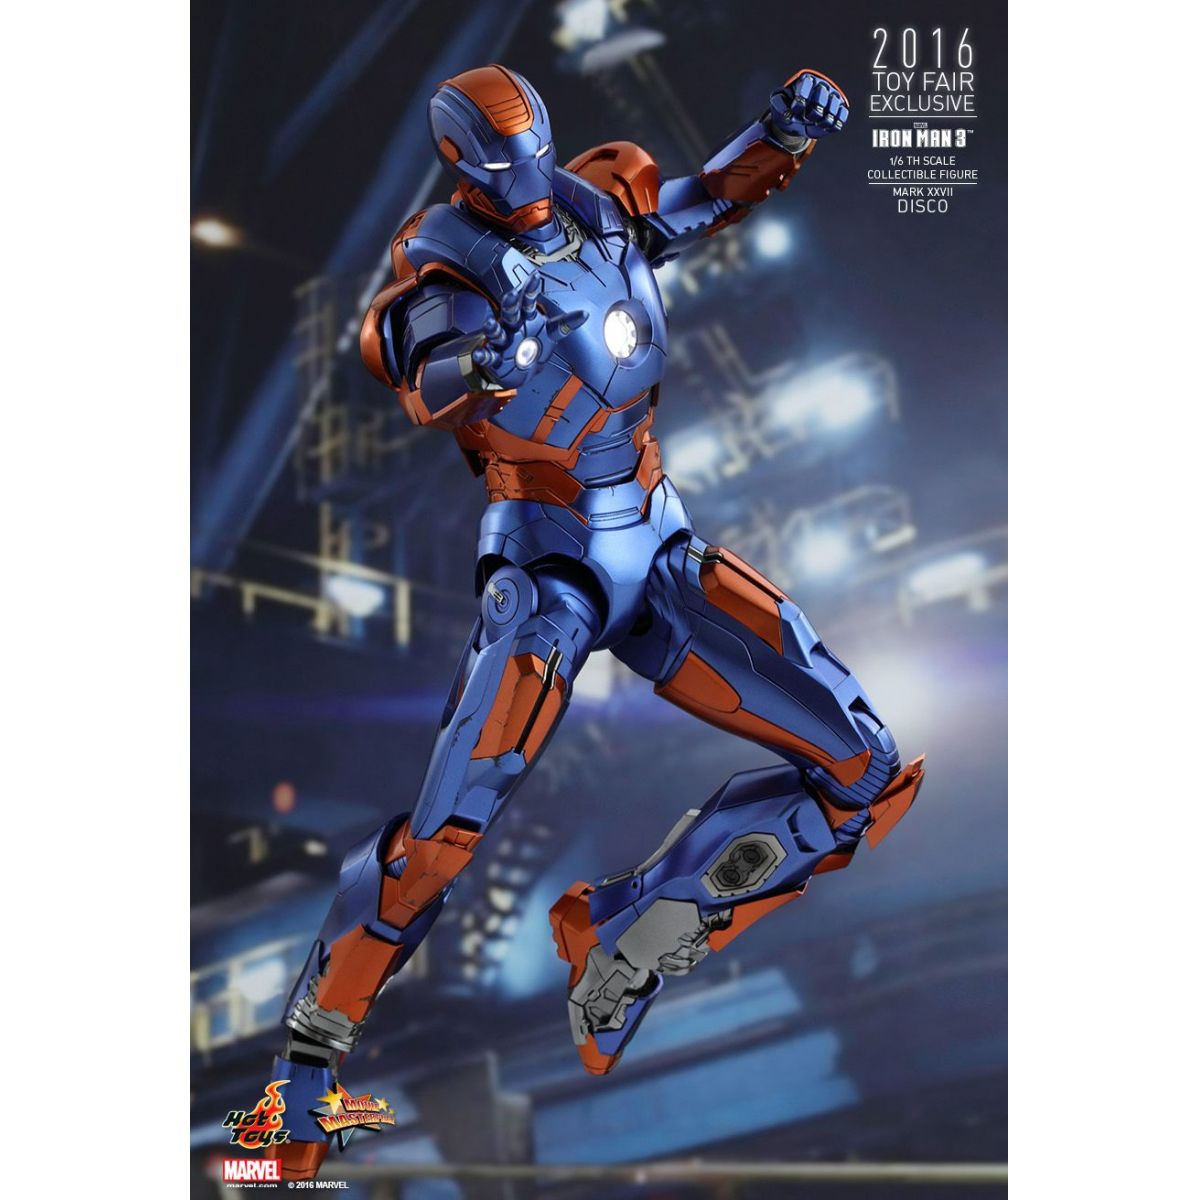 Hot Toys Homem de Ferro DIsco Mark XXVII Exclusivo Comic Con XP 2016 Iron Man 3  - Movie Freaks Collectibles